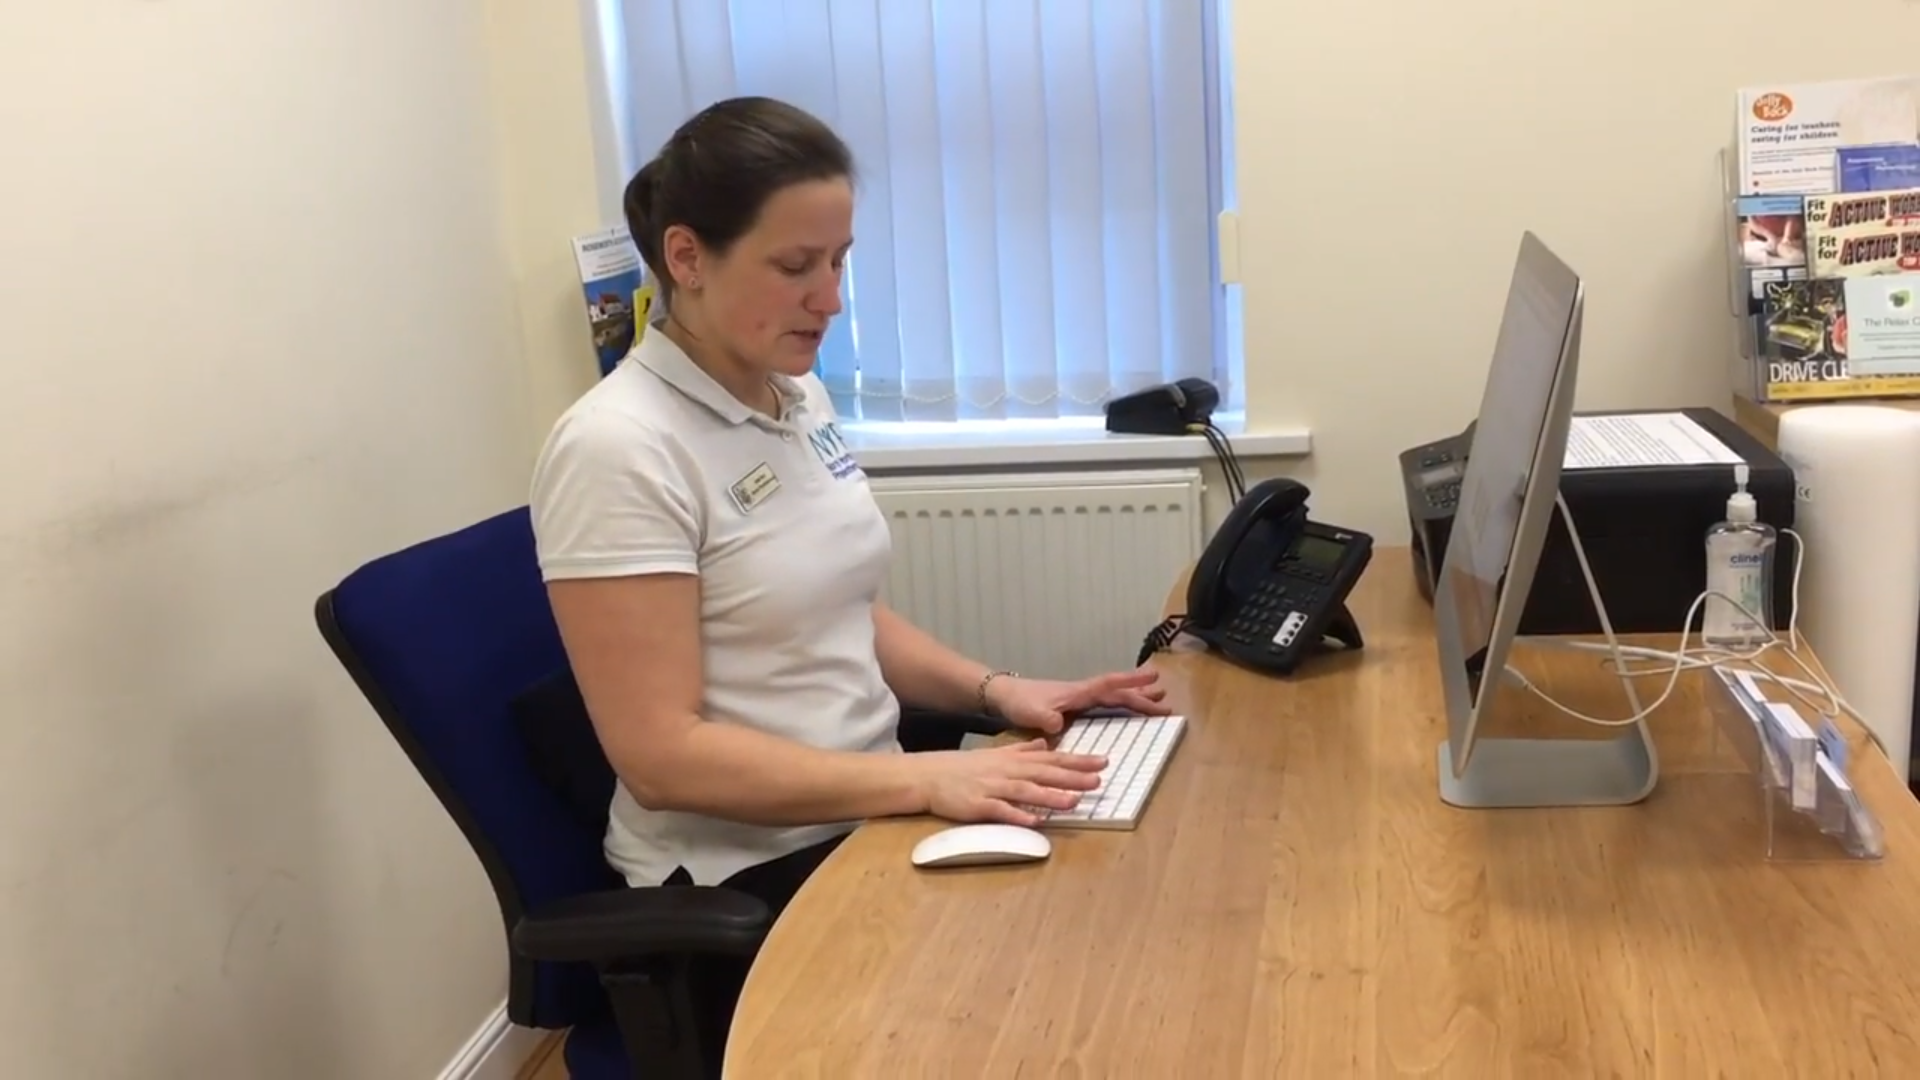 North Yorkshire Physiotherapy, Stokesley, Desk set up, posture